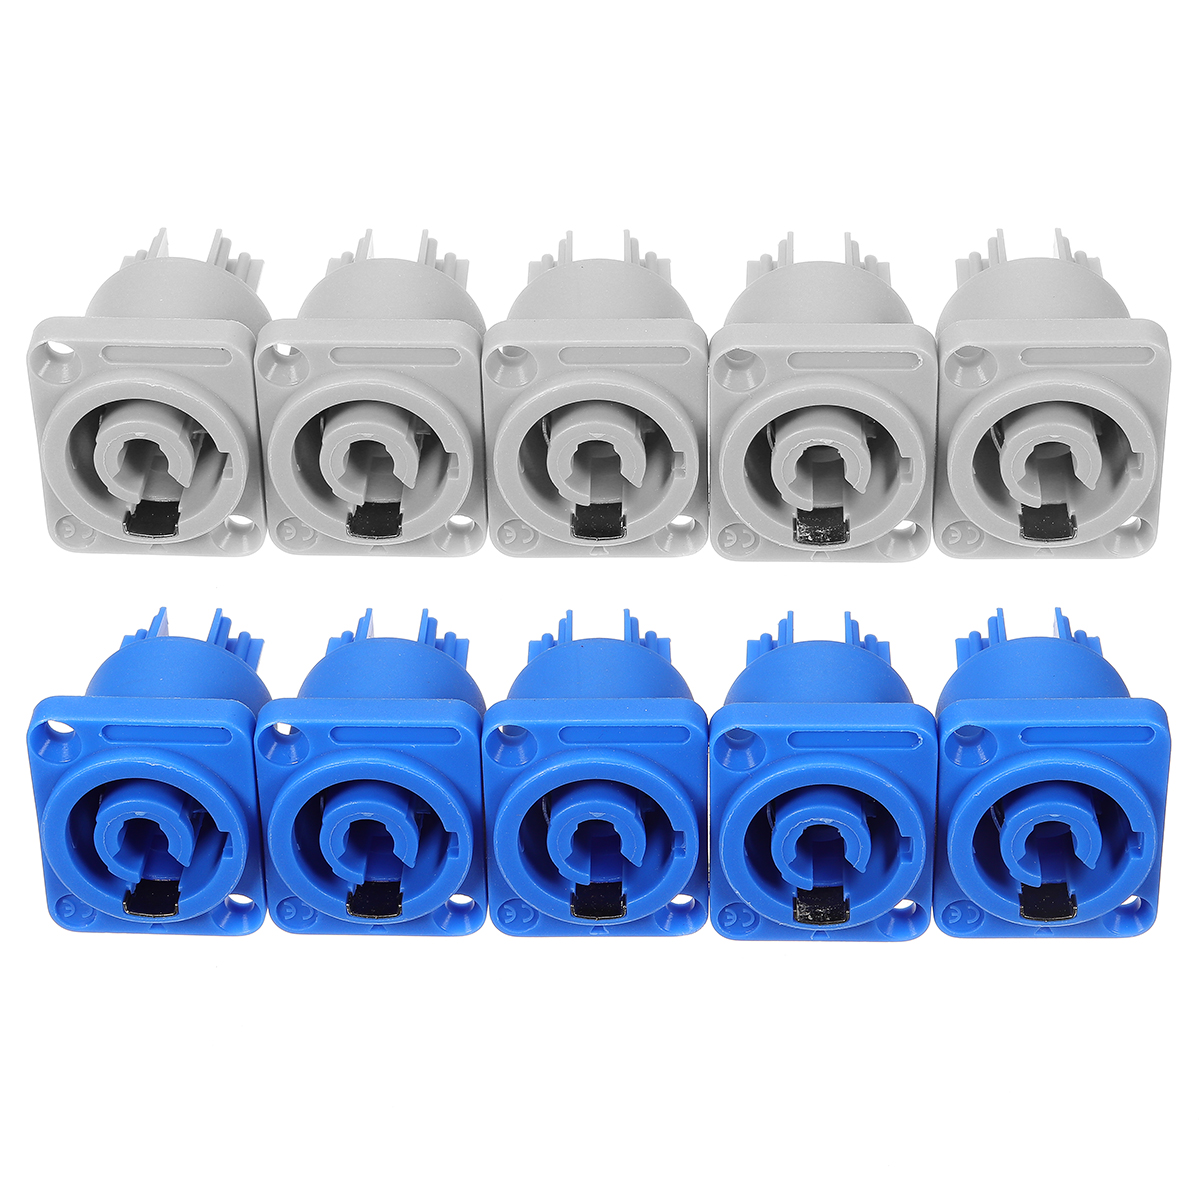 10 set Neutrik PowerCON Type A NAC3FCA+NAC3MPA-1 Chassis Plug Panel Adapter